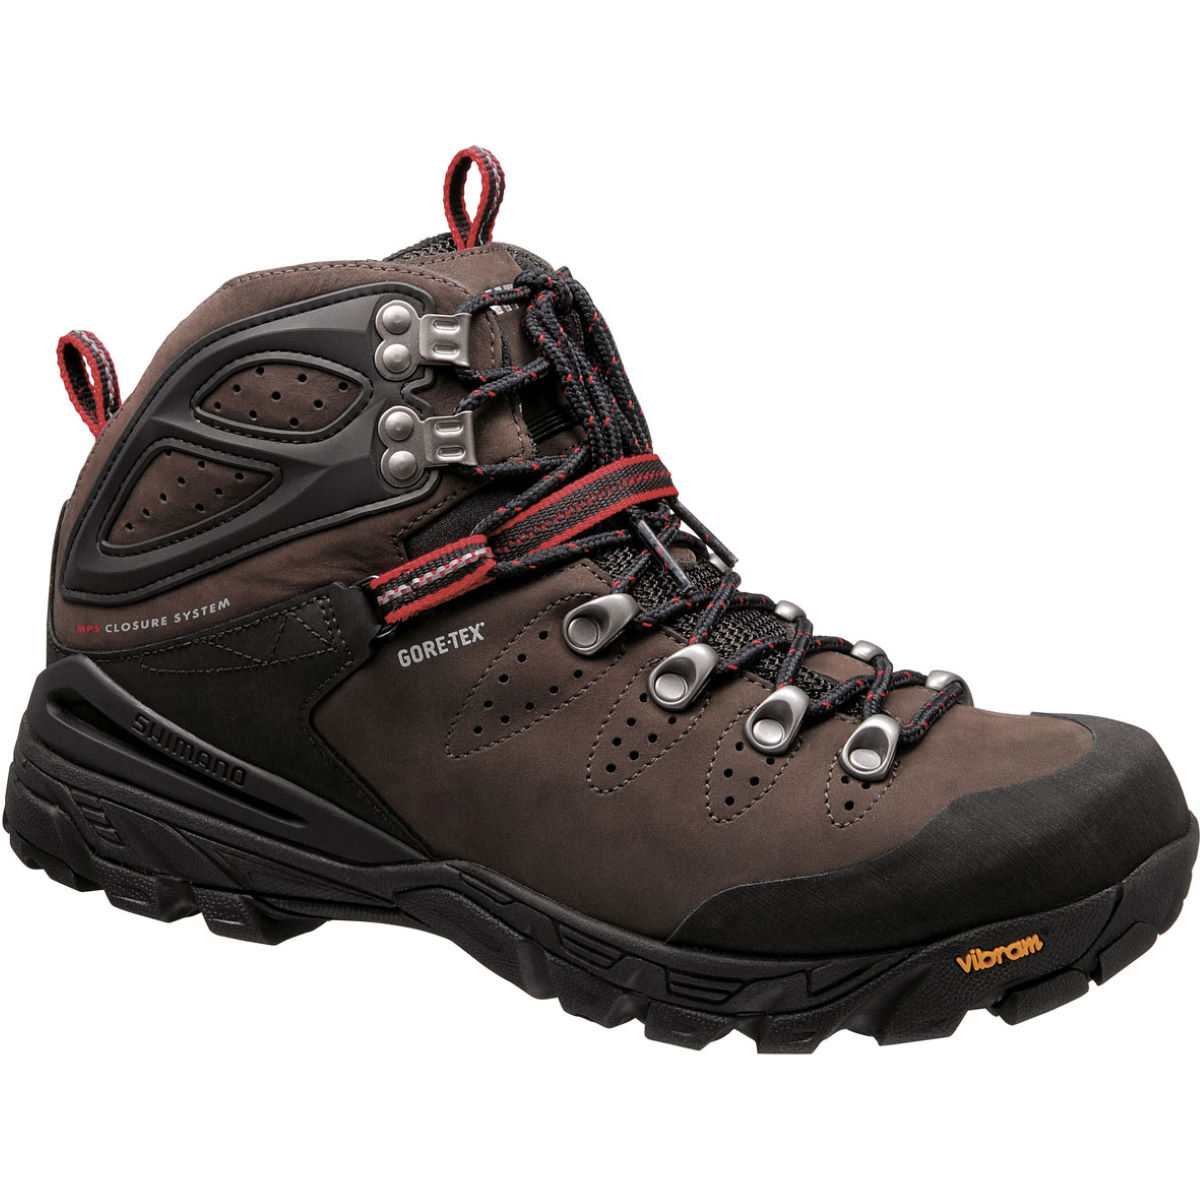 Shimano MT91 GoreTex SPD Touring/Hiking Boots